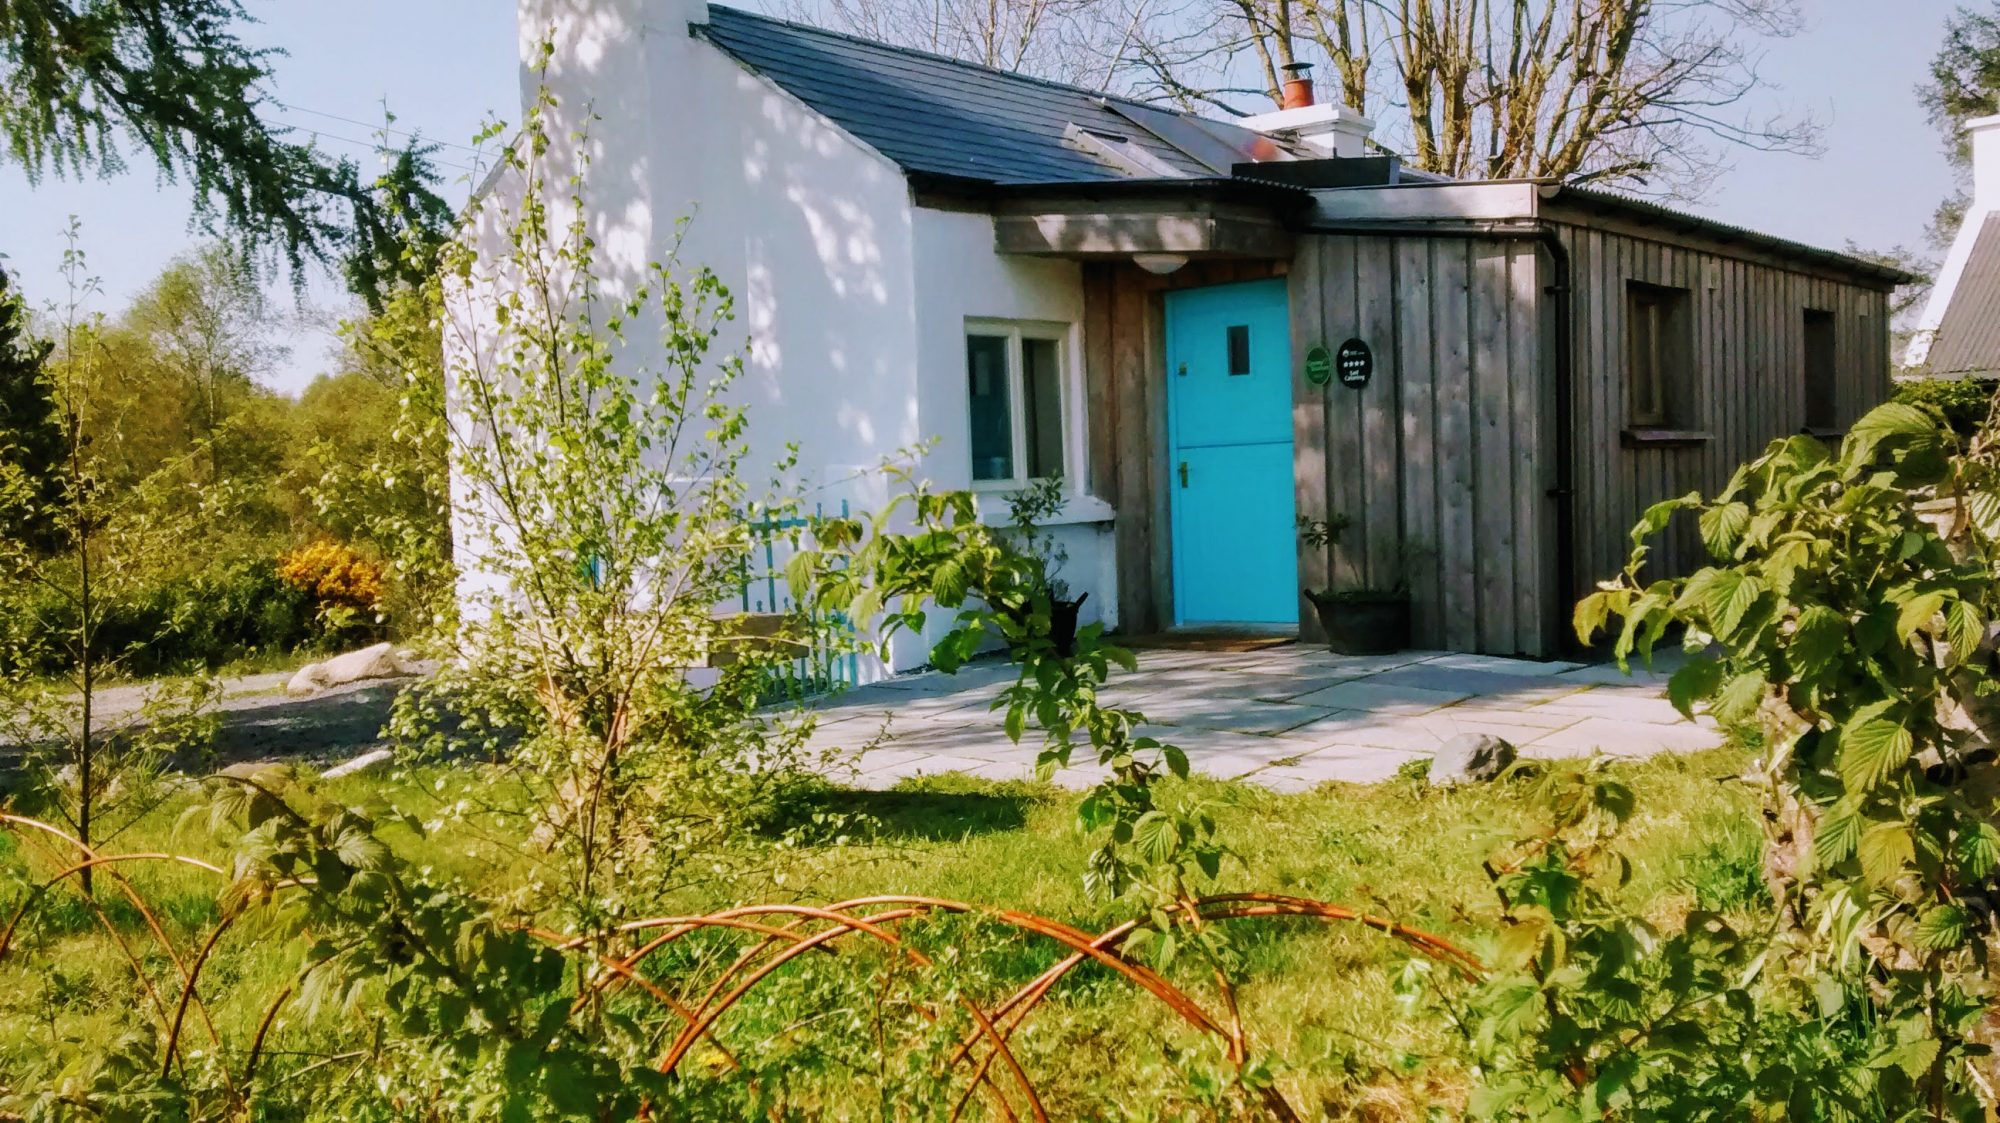 Our cottages in Northern Ireland are Green Tourism Gold rated